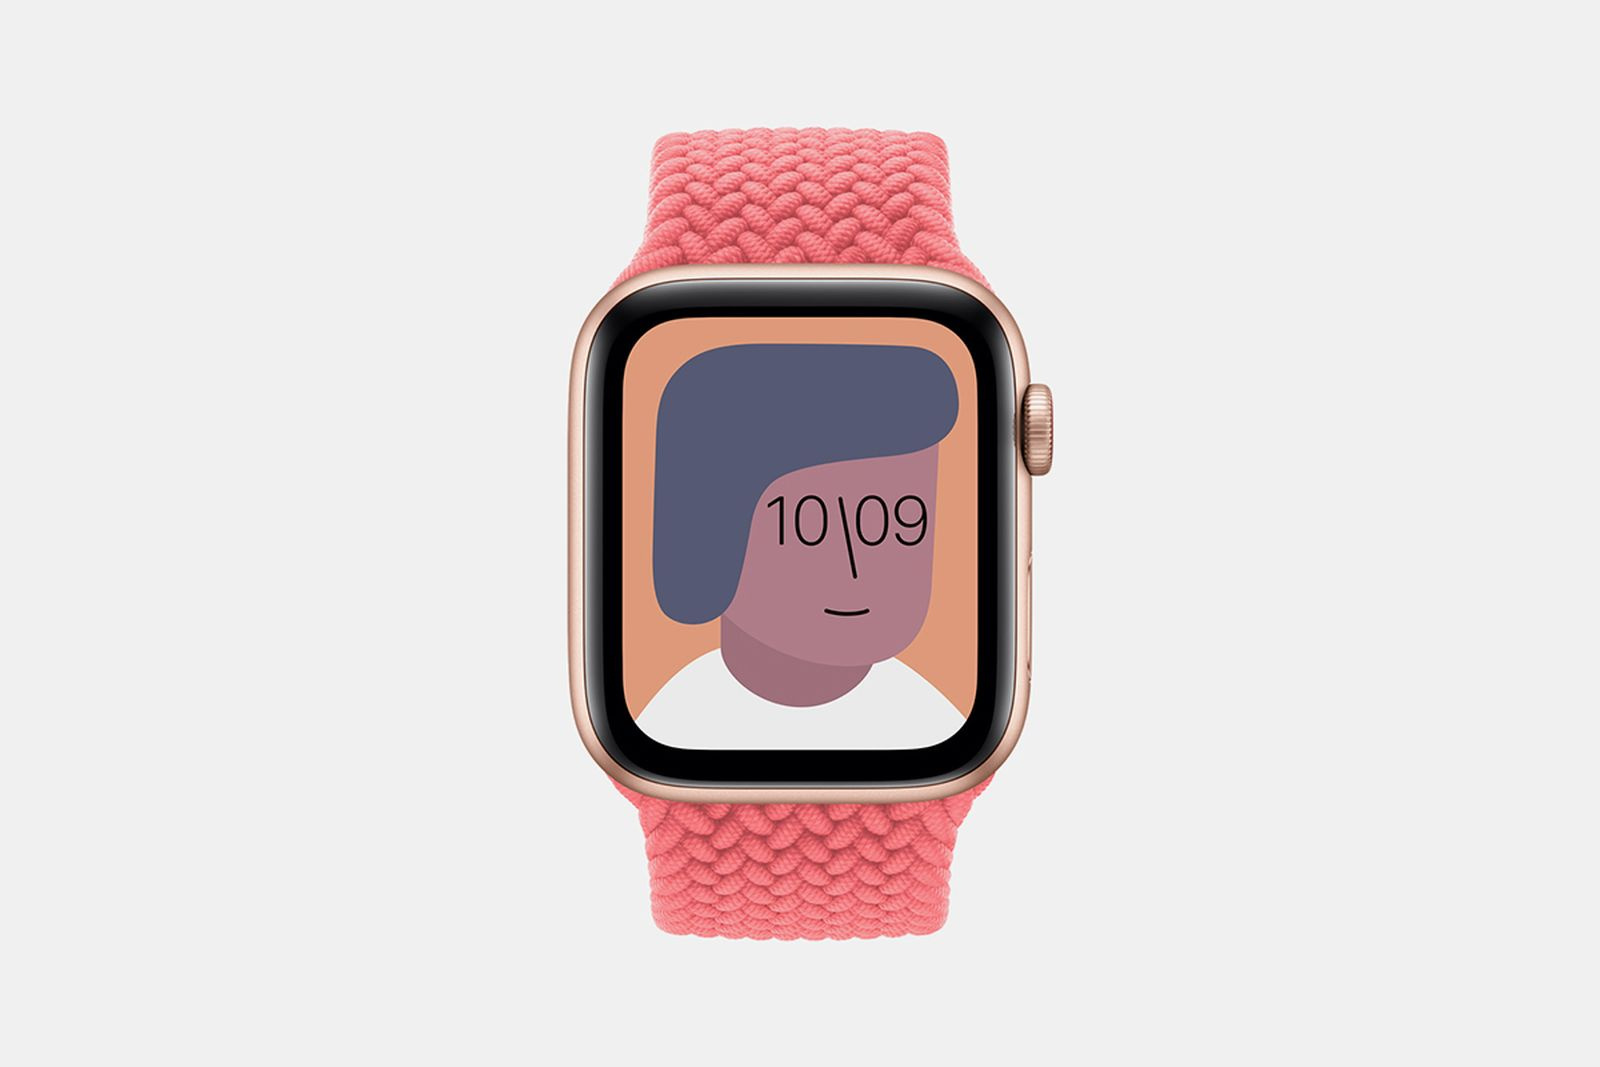 apple-watch-series-6-ipad-air-1-02